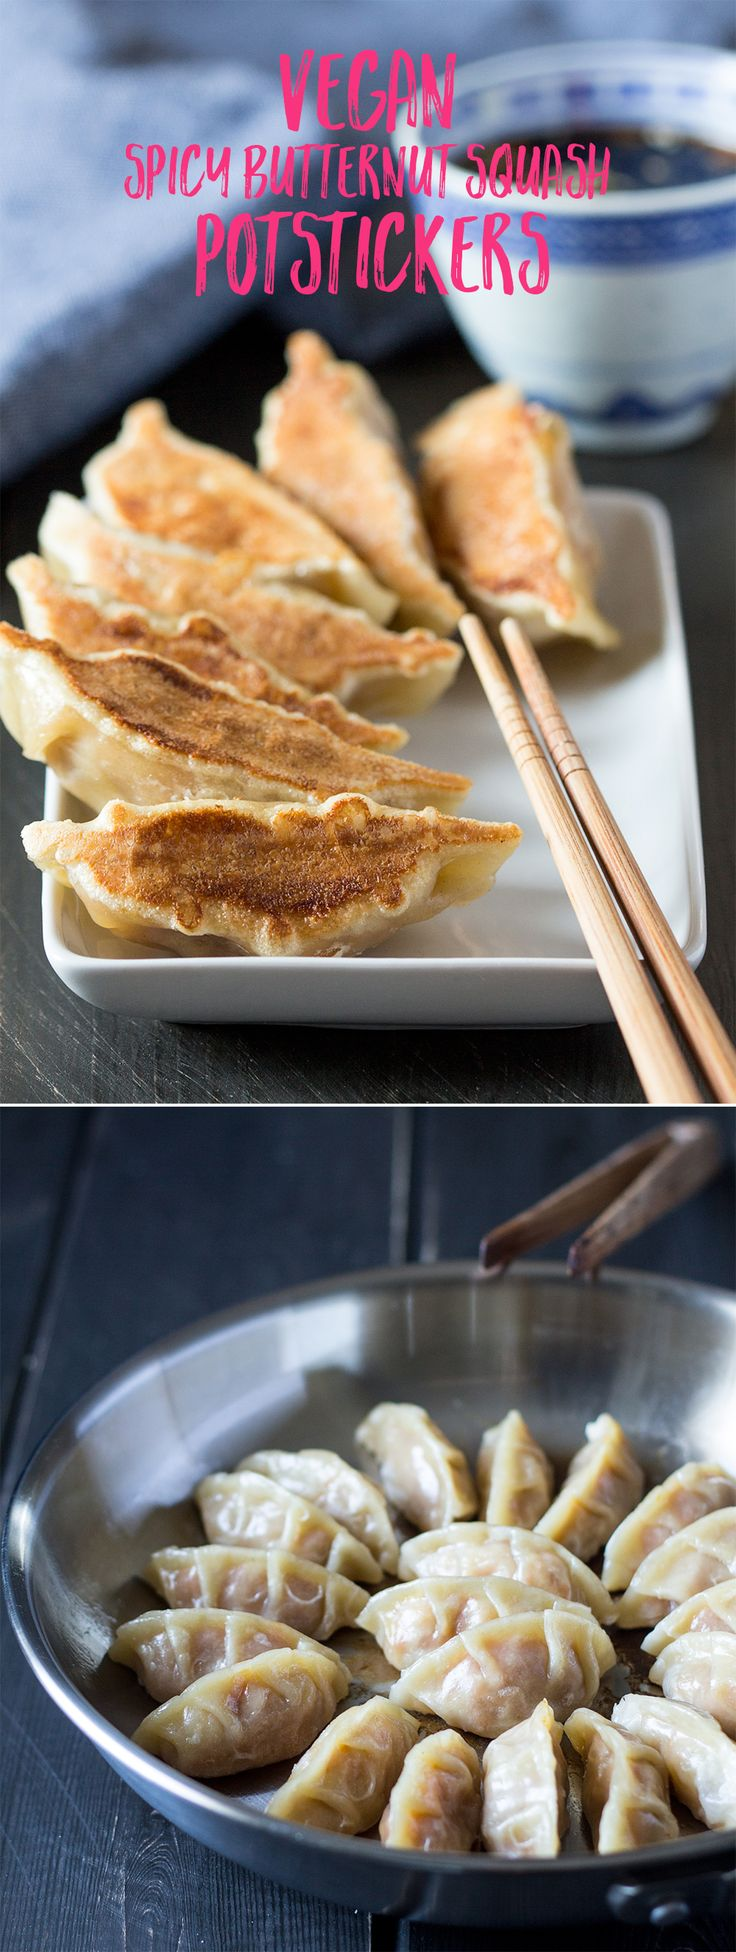 Who does not like #chinese #potstickers with #crispy undersides and #delicious #filling? These beauties are #vegan and contain a #spicy #butternutsquash filling. To die for! #recipe #recipes #lunch #dinner #pumpkin #vegetarian #dumplings